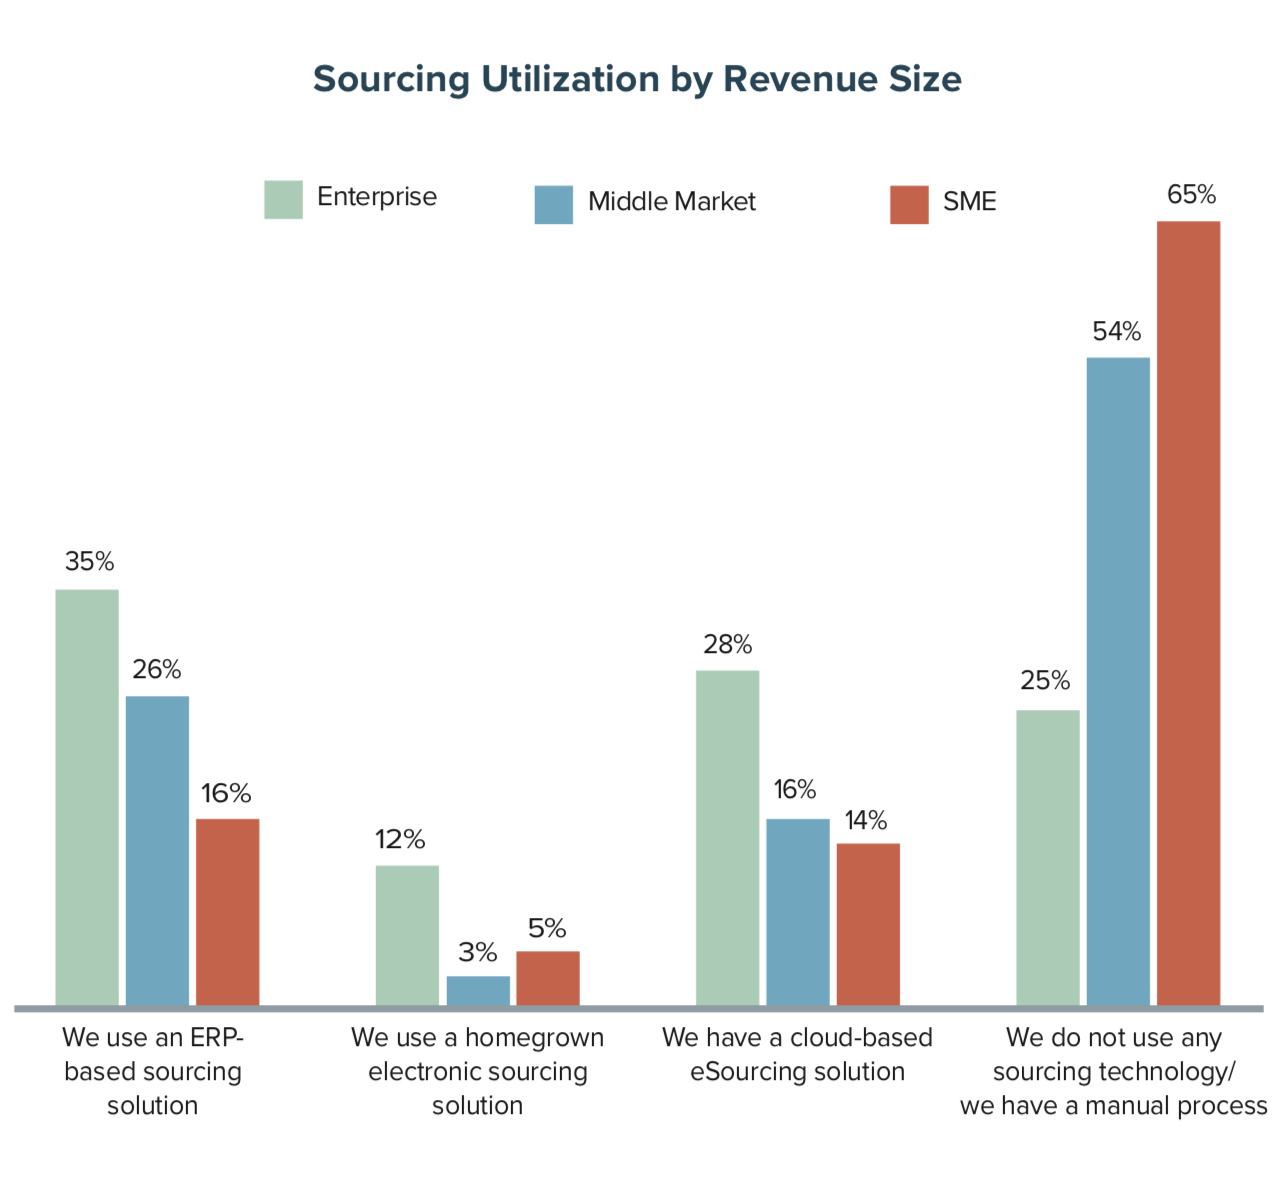 Sourcing Utilization by Revenue Size